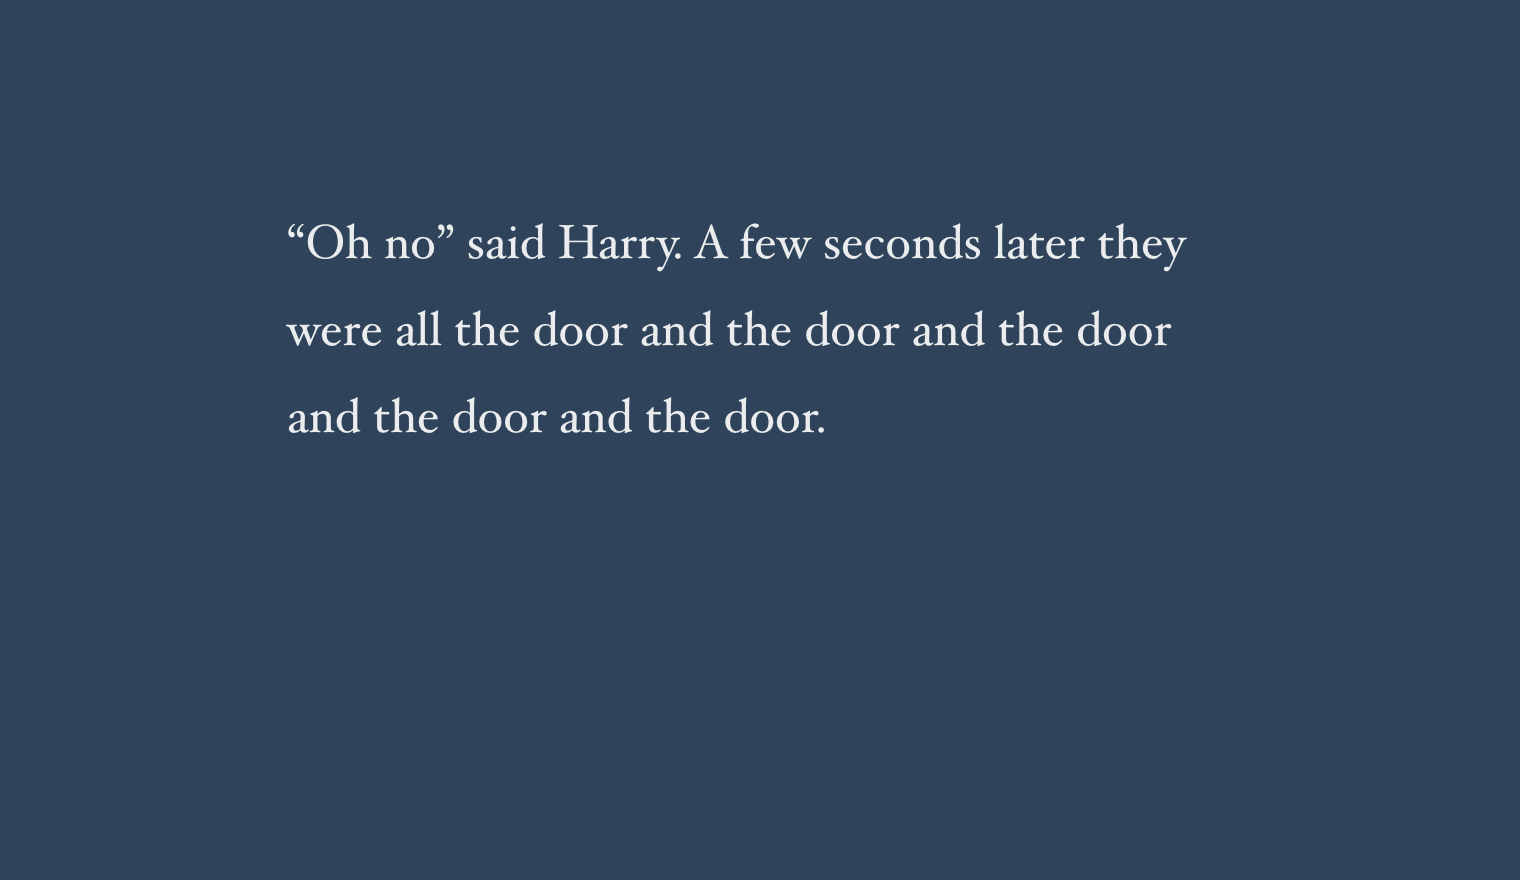 """Oh no"" said Harry. A few seconds later they were all the door and the door and the door and the door and the door."